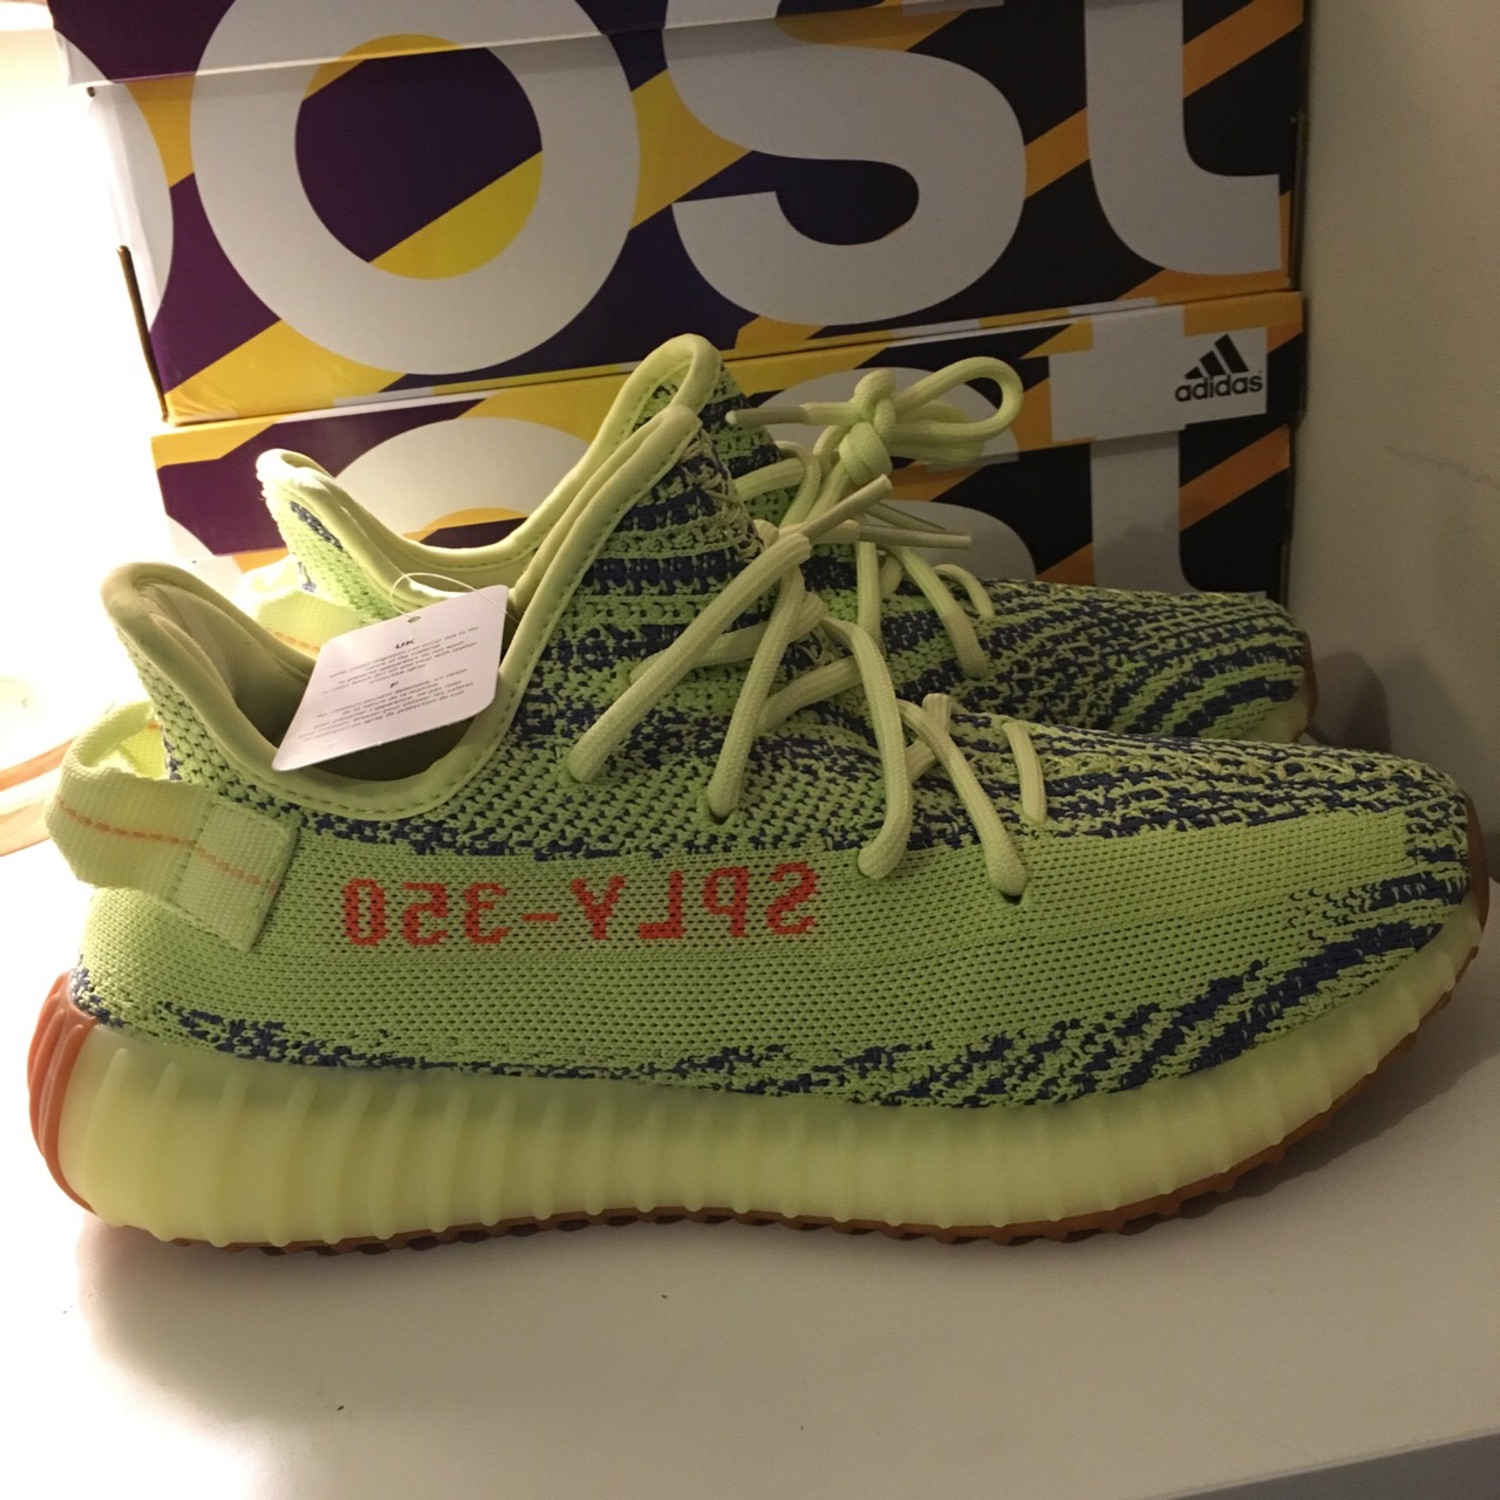 premium selection e732d c3afe Adidas Yeezy Boost 350 V2// Semi-Frozen Yellow